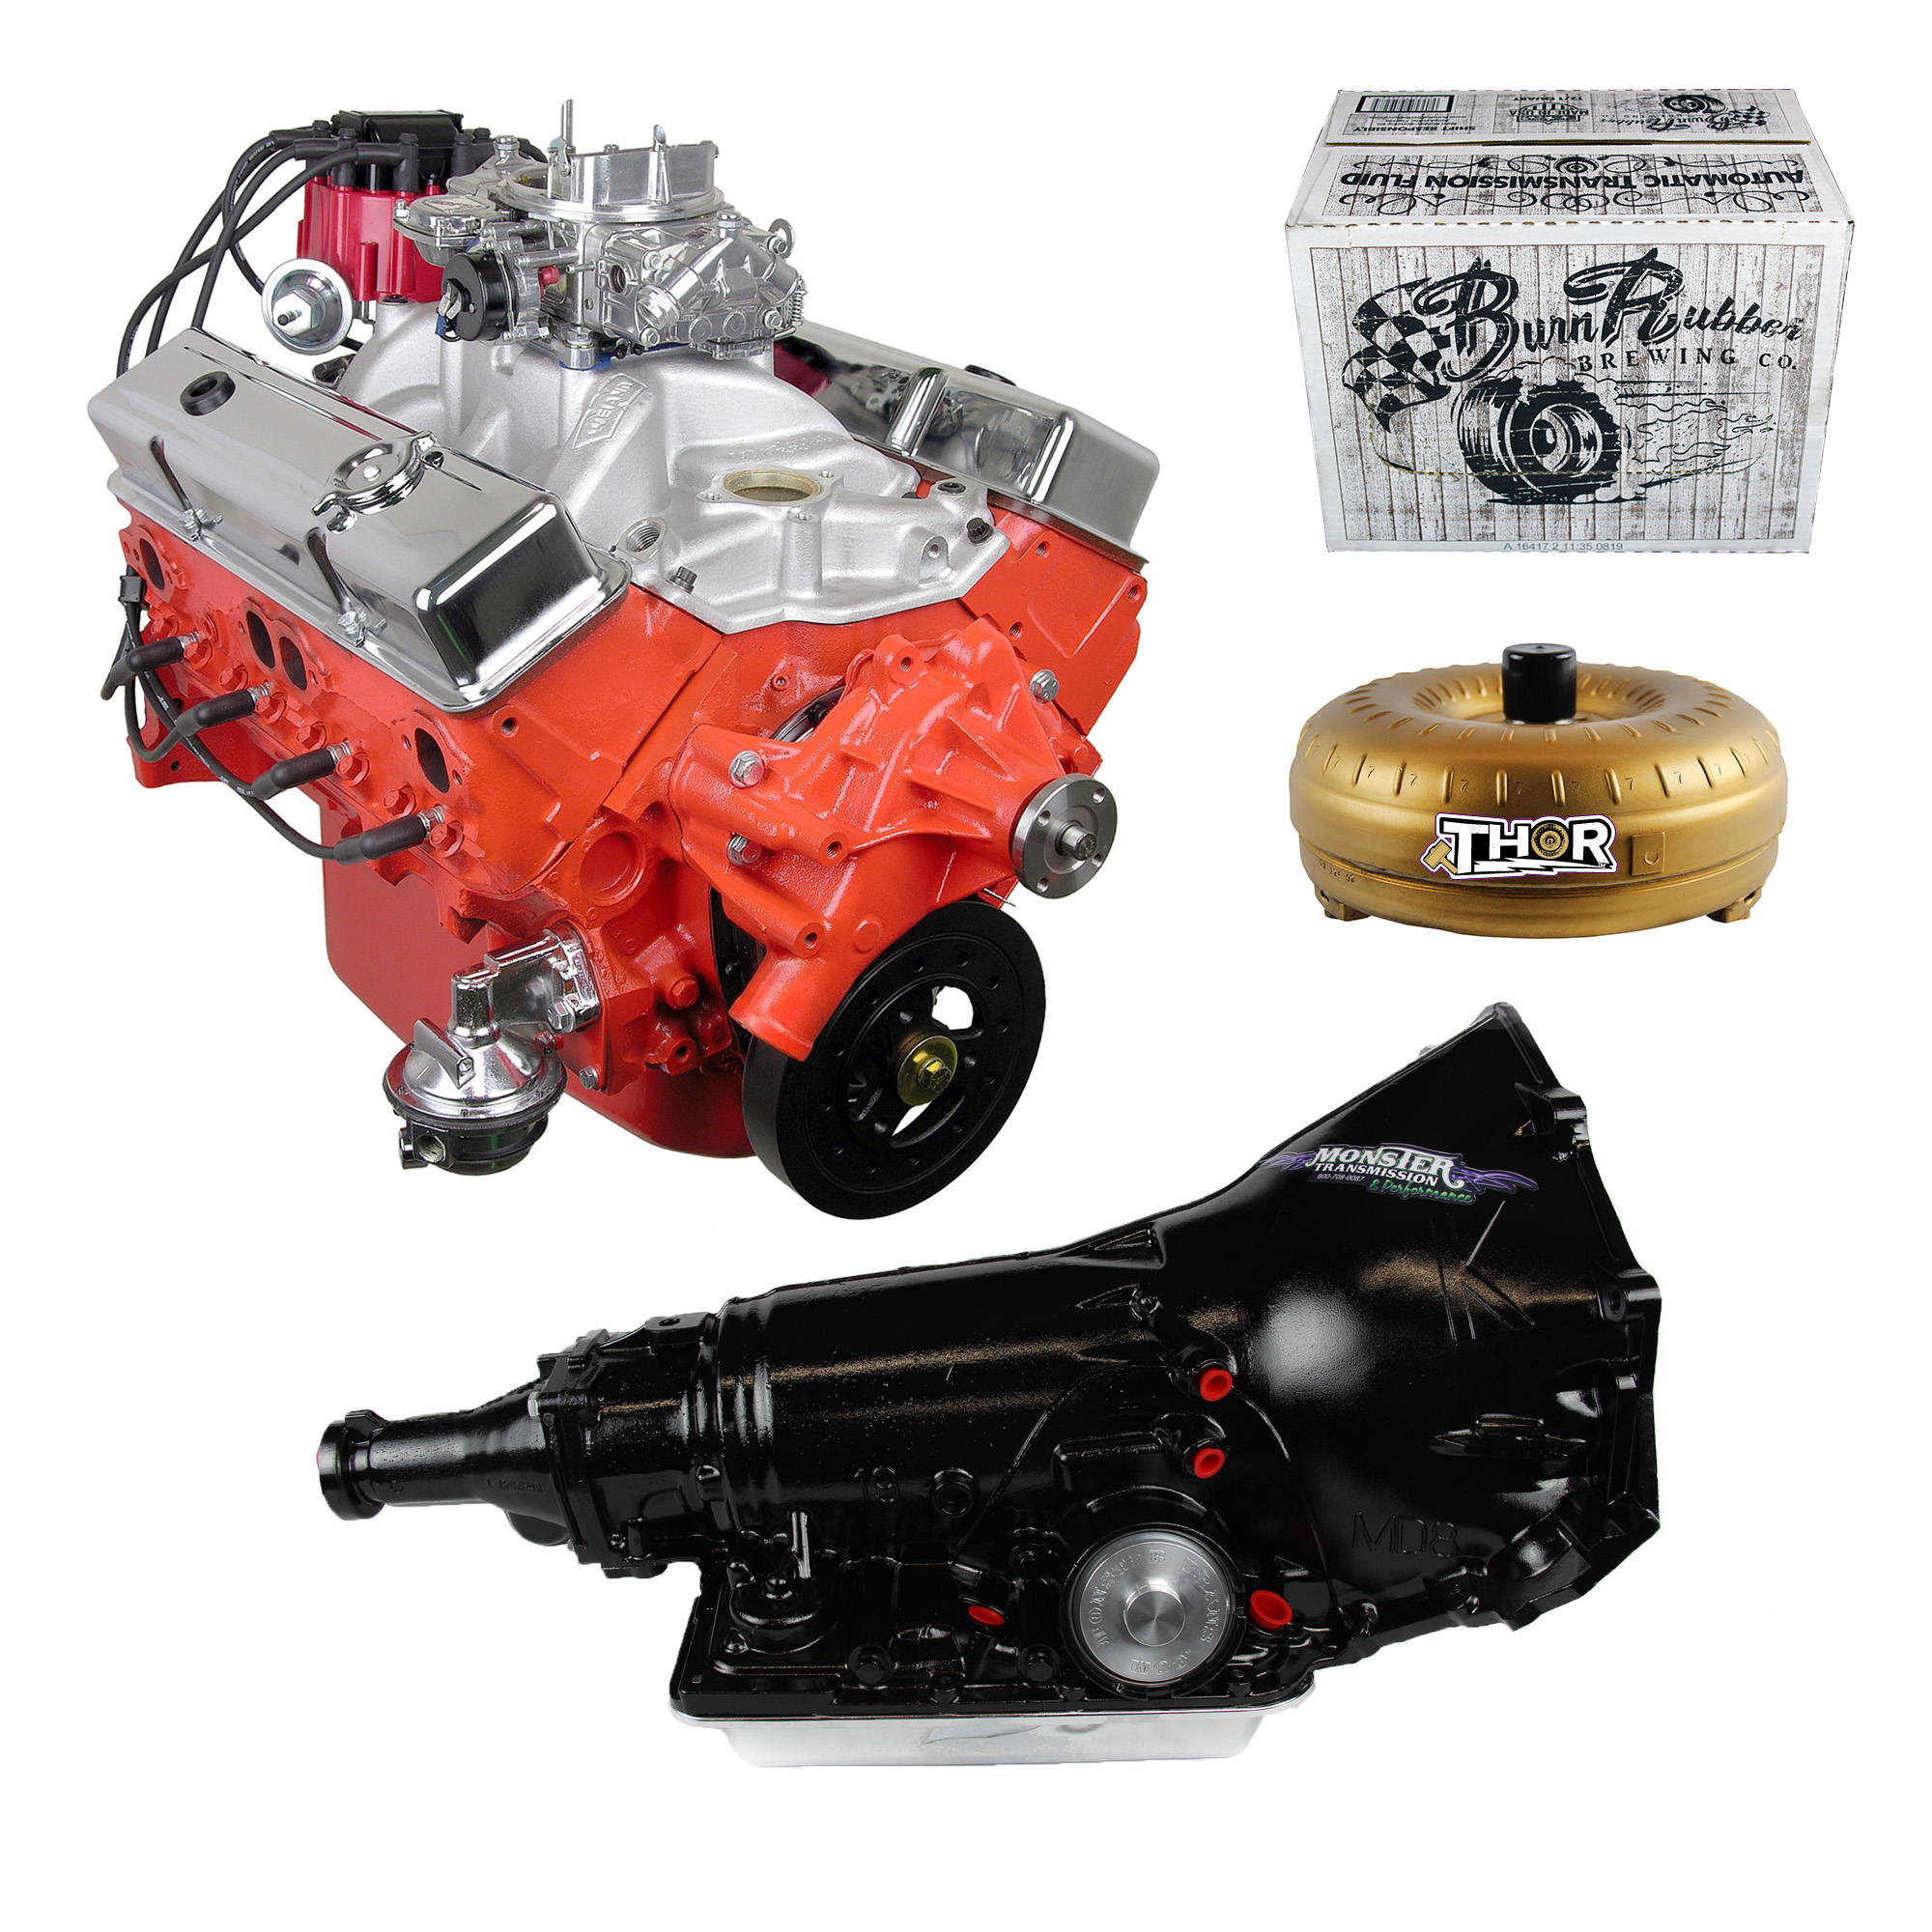 700r4 Transmission For Sale >> Monster Powertrain Package Chevy 350 Engine Rated At 325hp 375tq With 700r4 Transmission